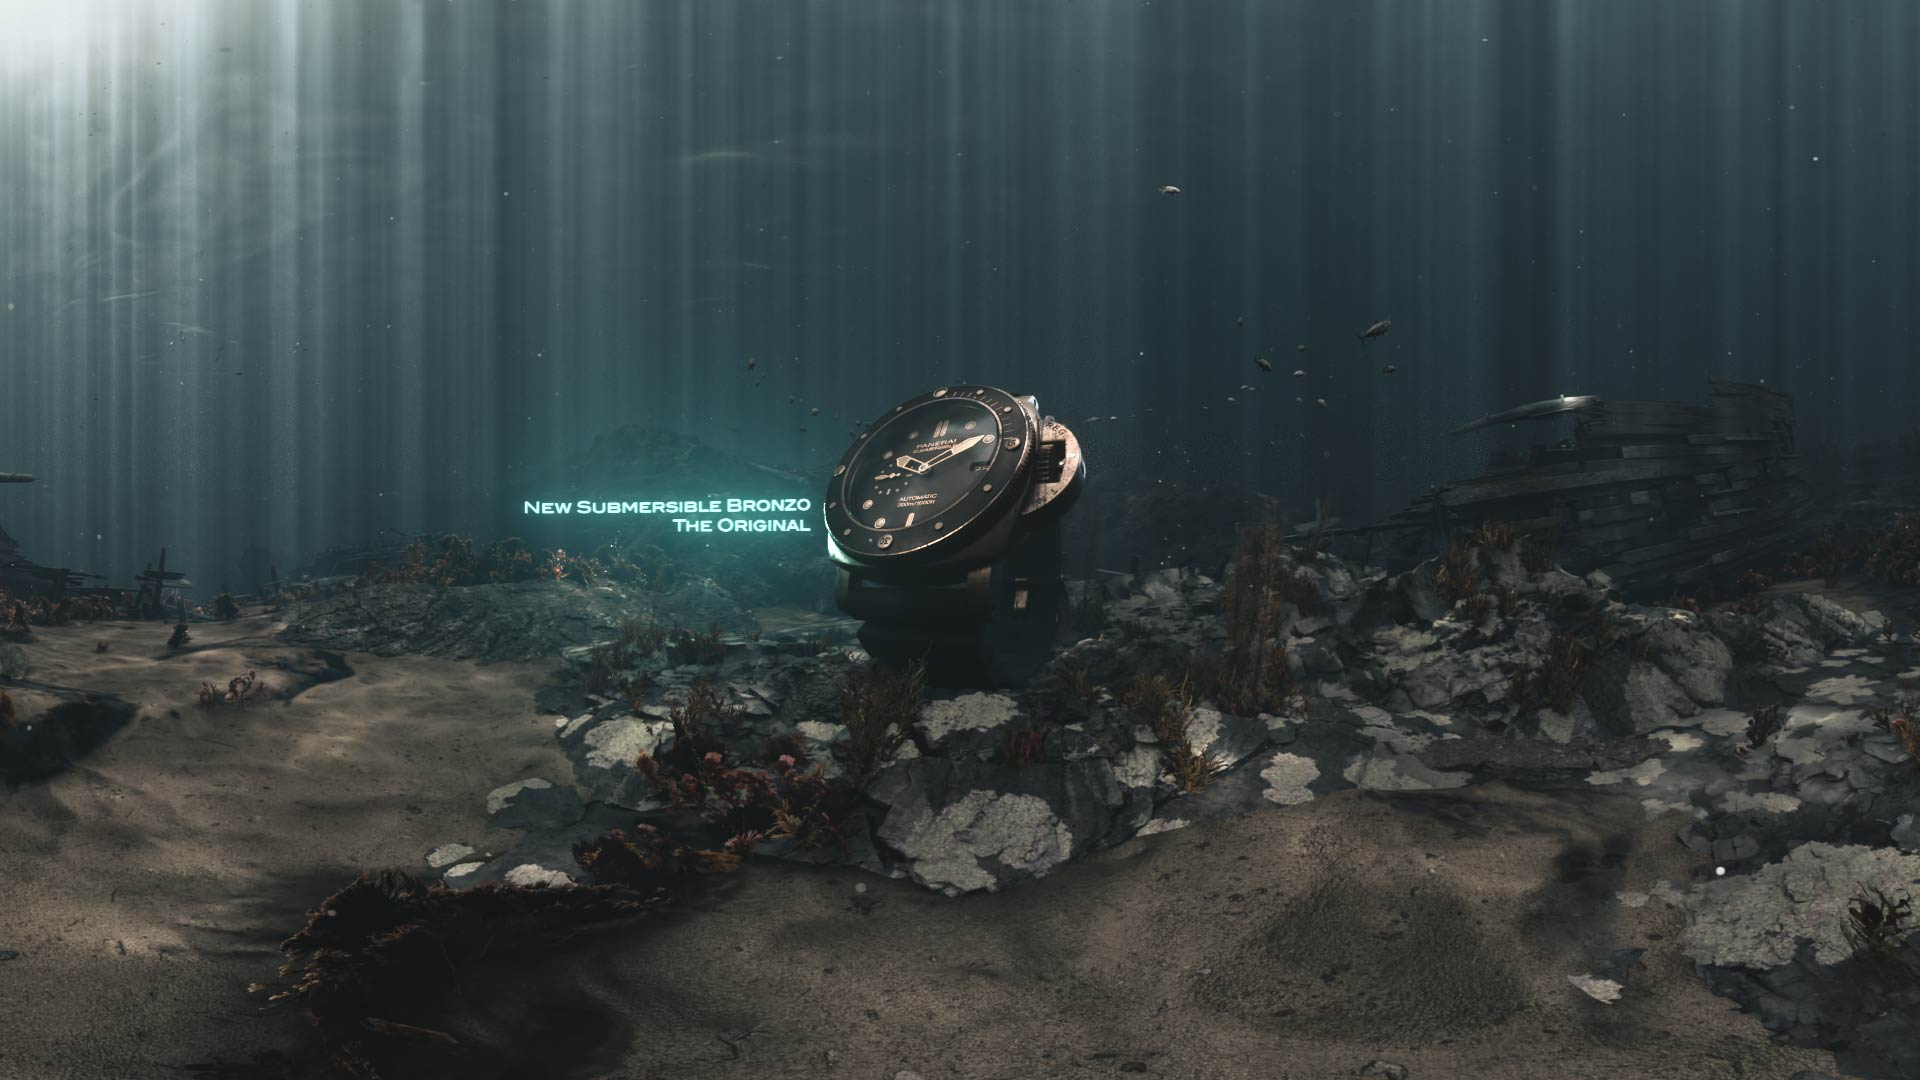 3D visual of a Panerai Bronzo watch posed on the seabed